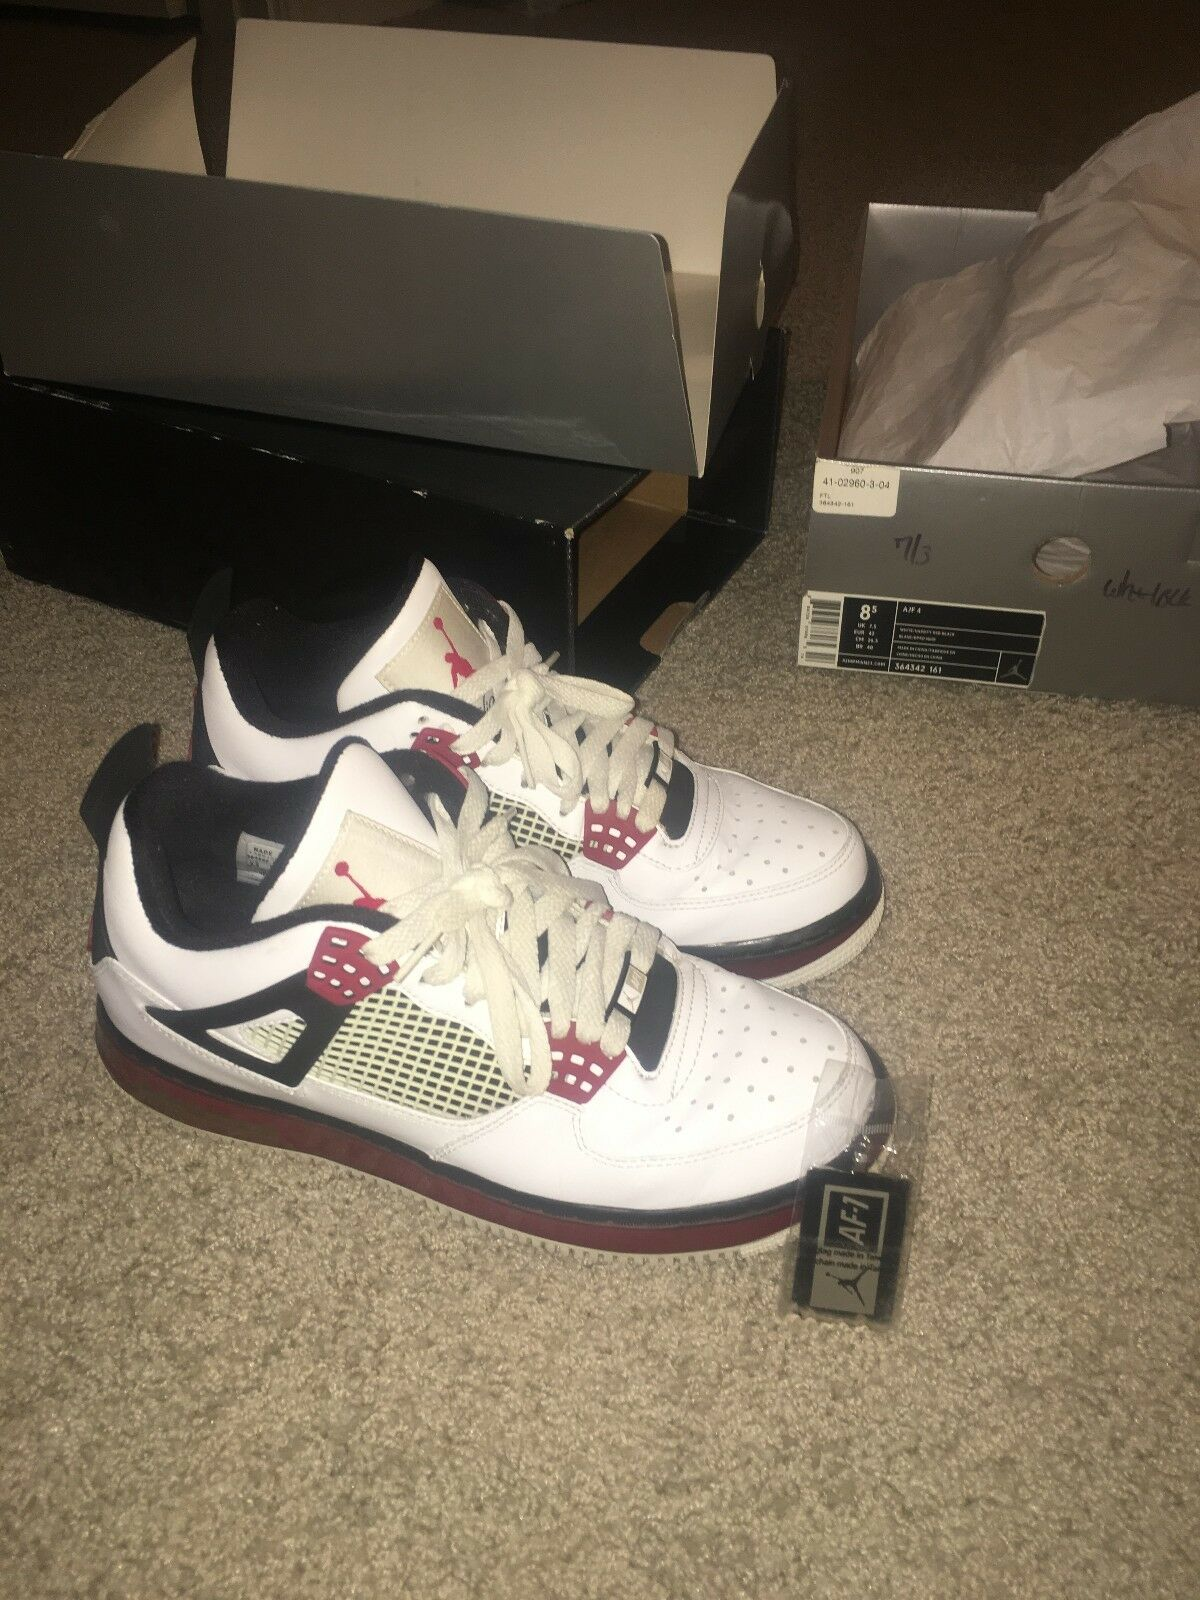 separation shoes 5a3f2 7411a Nike Air Jordan 4 4 4 IV Fusion White varsity Red black Air Force AF1 AJF4  size 8.5 6a9982